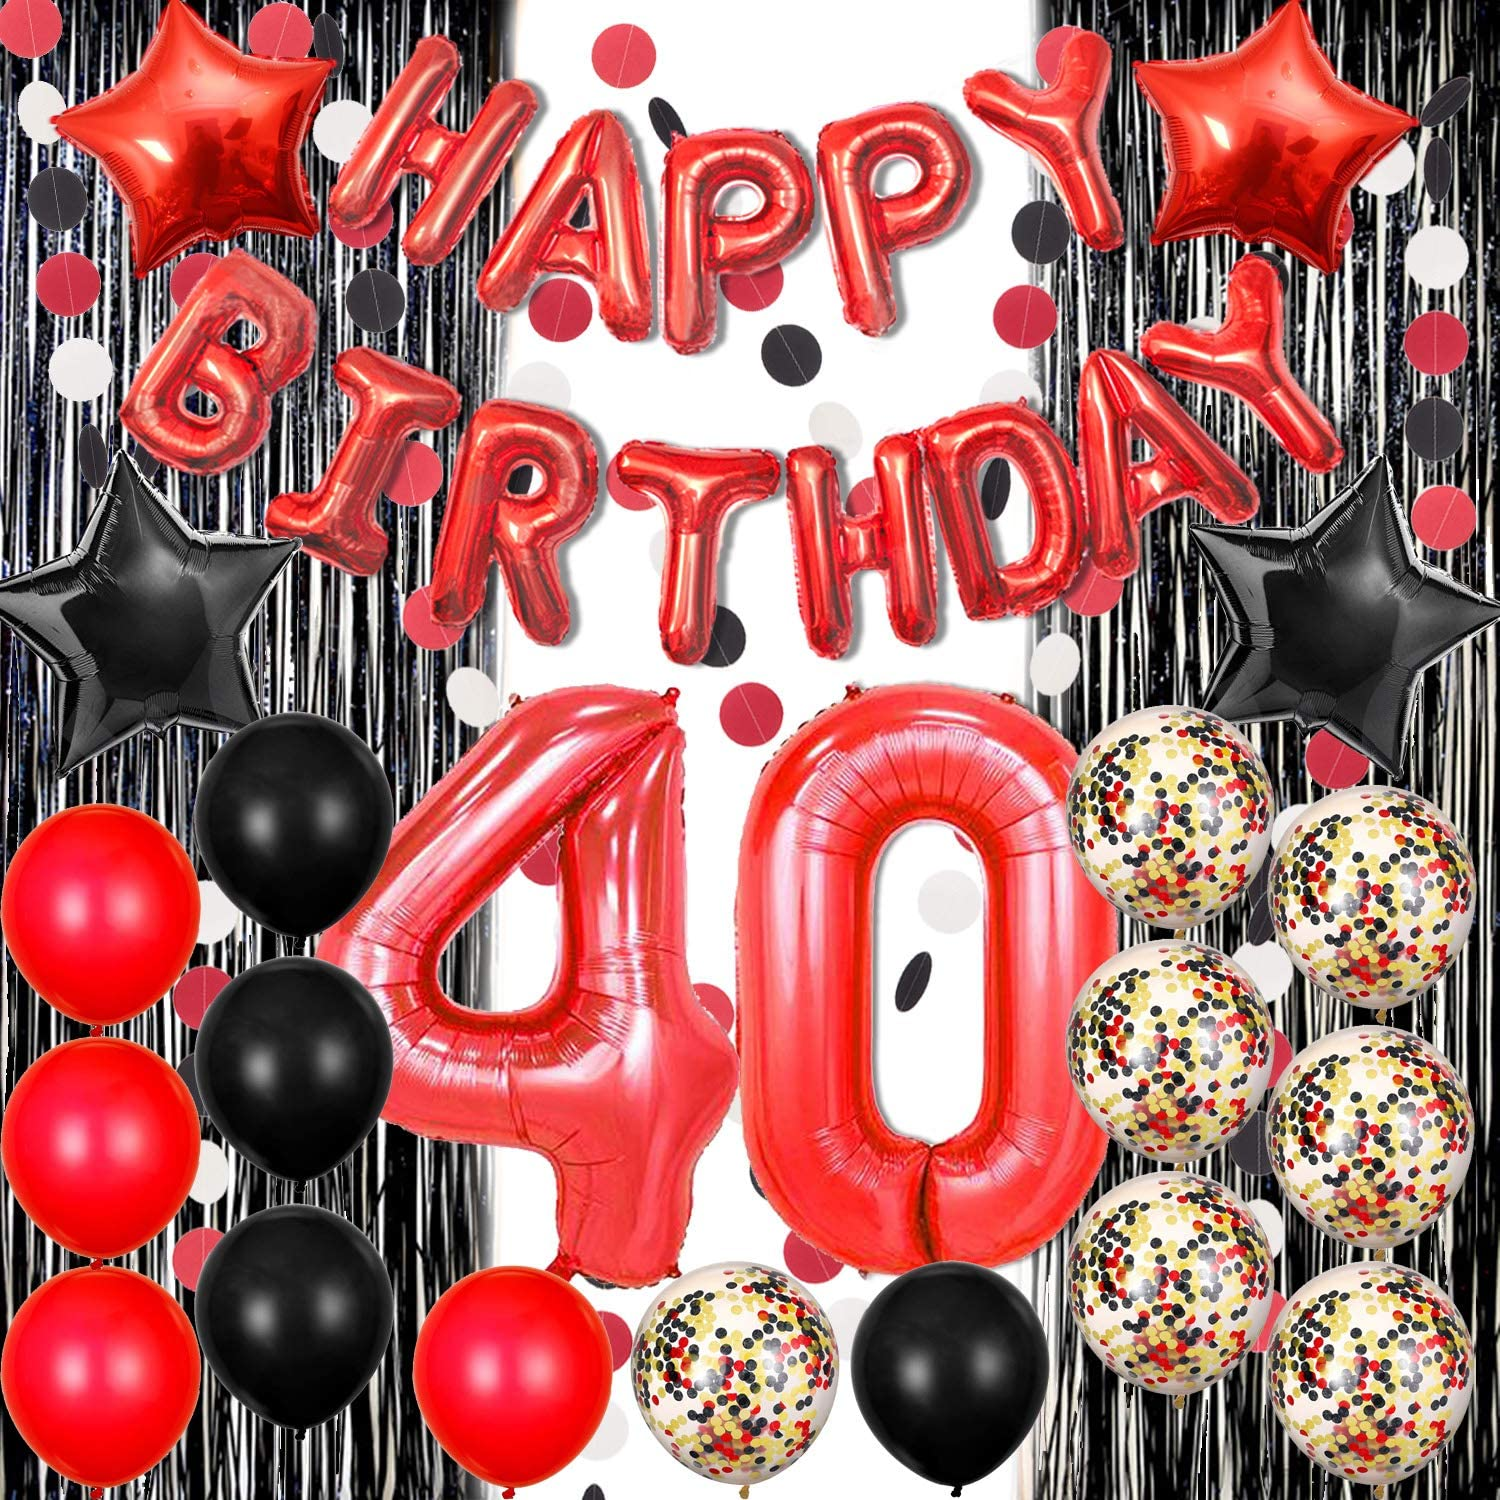 Red Black Gold Confetti Balloons Decoration for Birthday Parties Happy 50th Red Happy Birthday Balloons Banner Decorations Party Supplies for Adults Baloons for Birthday Party, 50th Red and Black Balloons Happy Birthday Party Decorations for Women Men